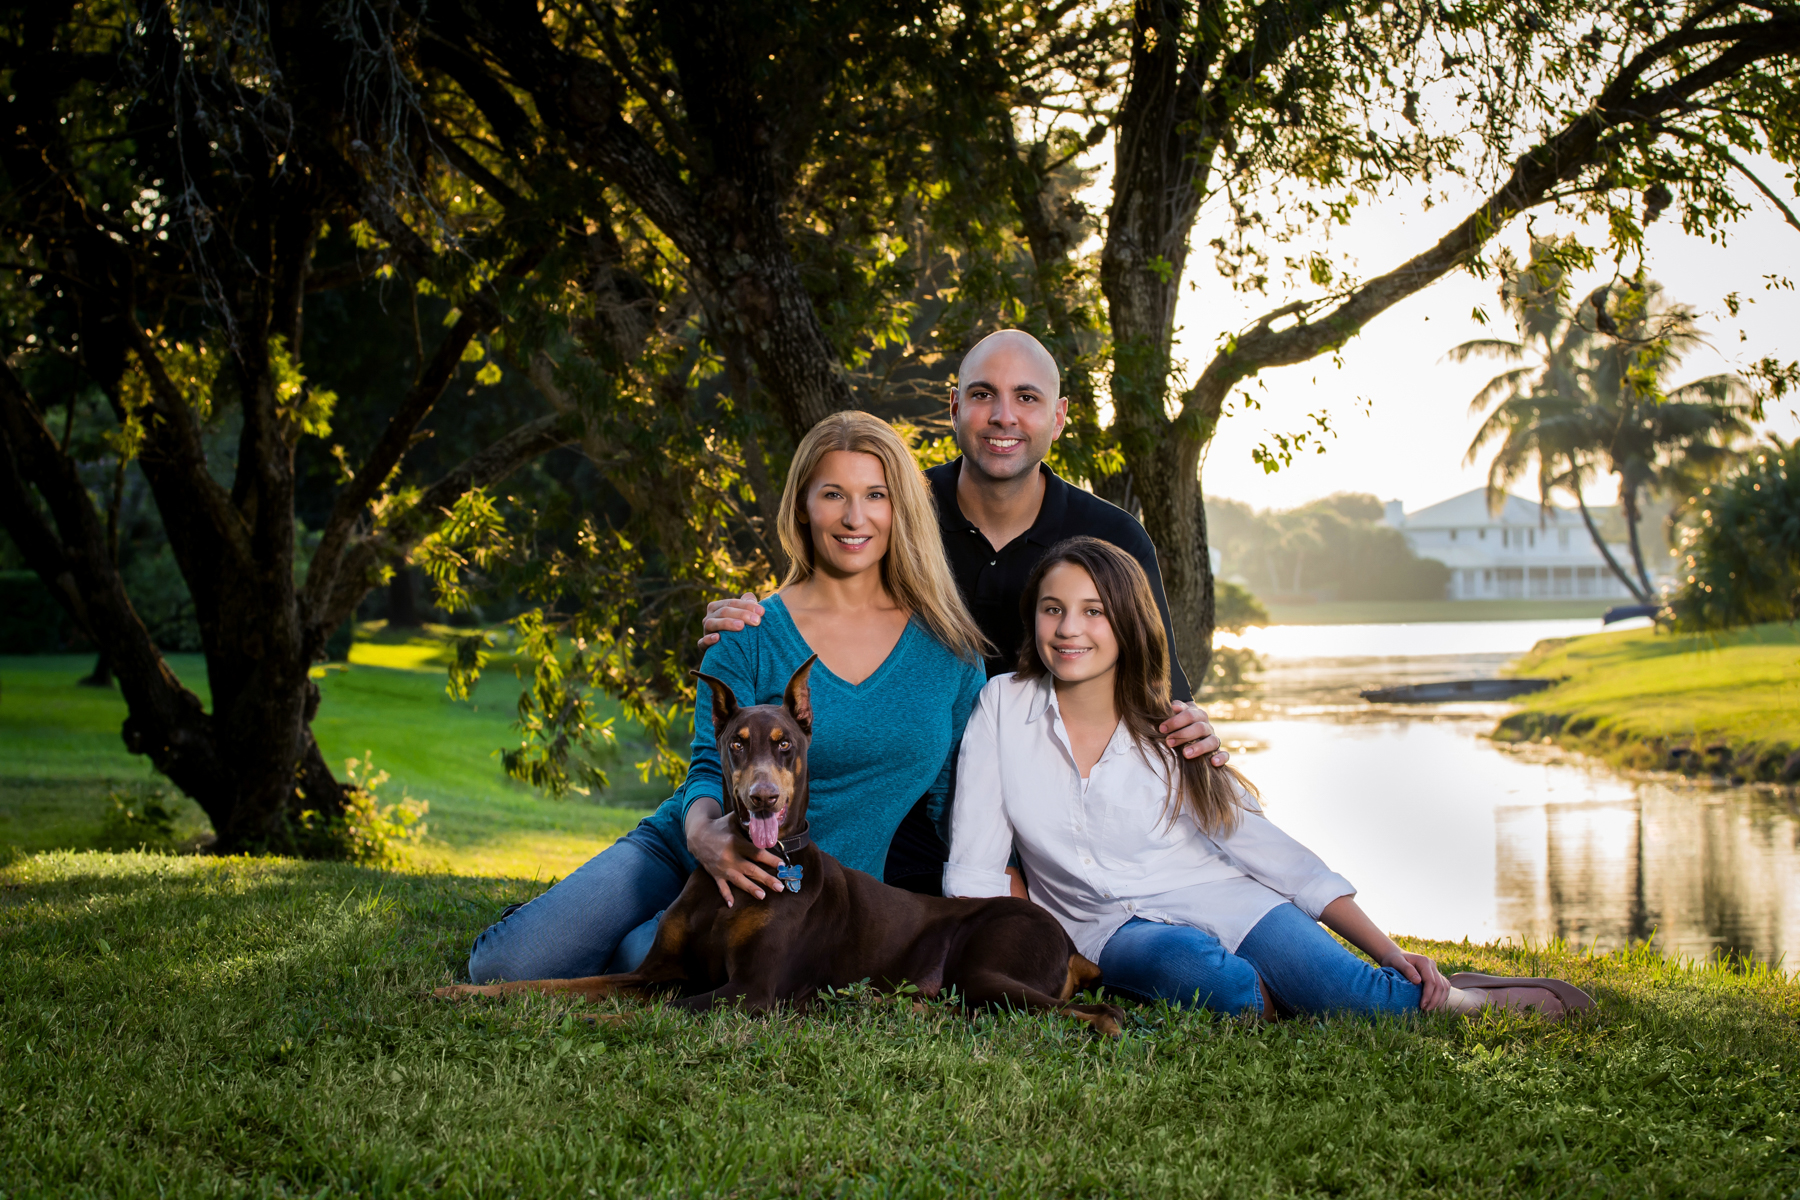 Family portrait session in Royal Palm Beach Gardens, FL.